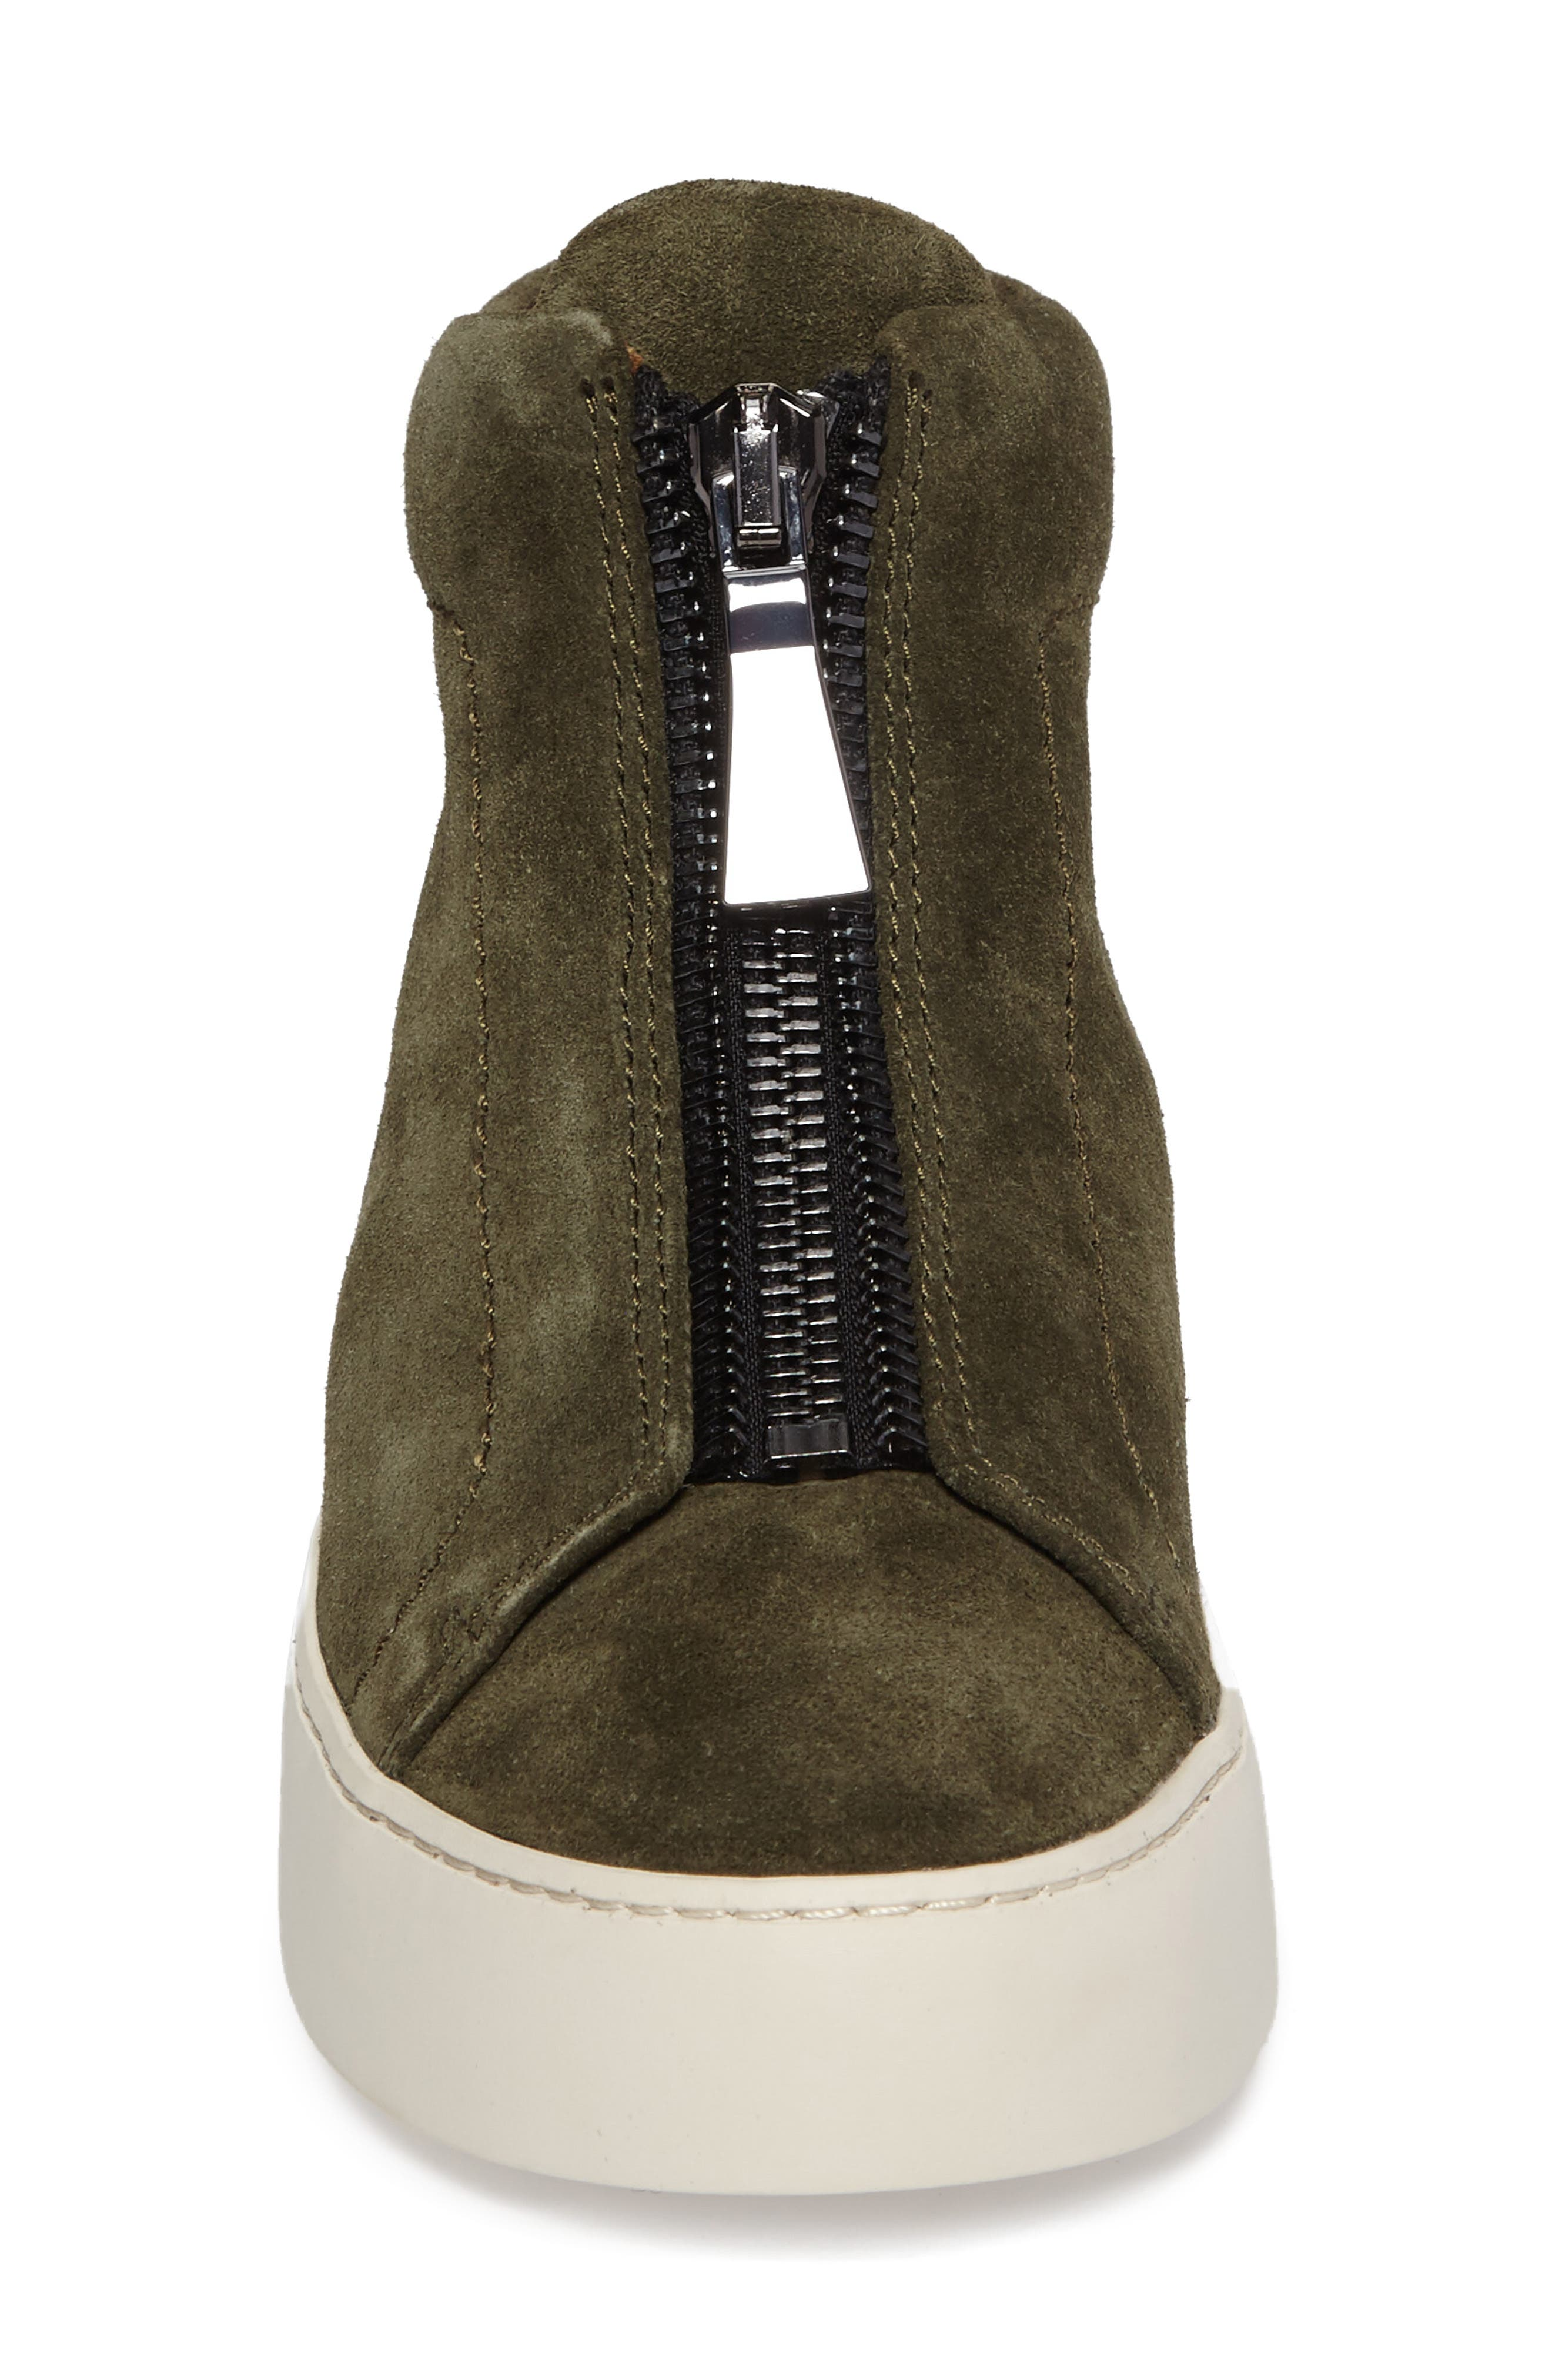 Lena Zip High Top Sneaker,                             Alternate thumbnail 4, color,                             Forest Suede